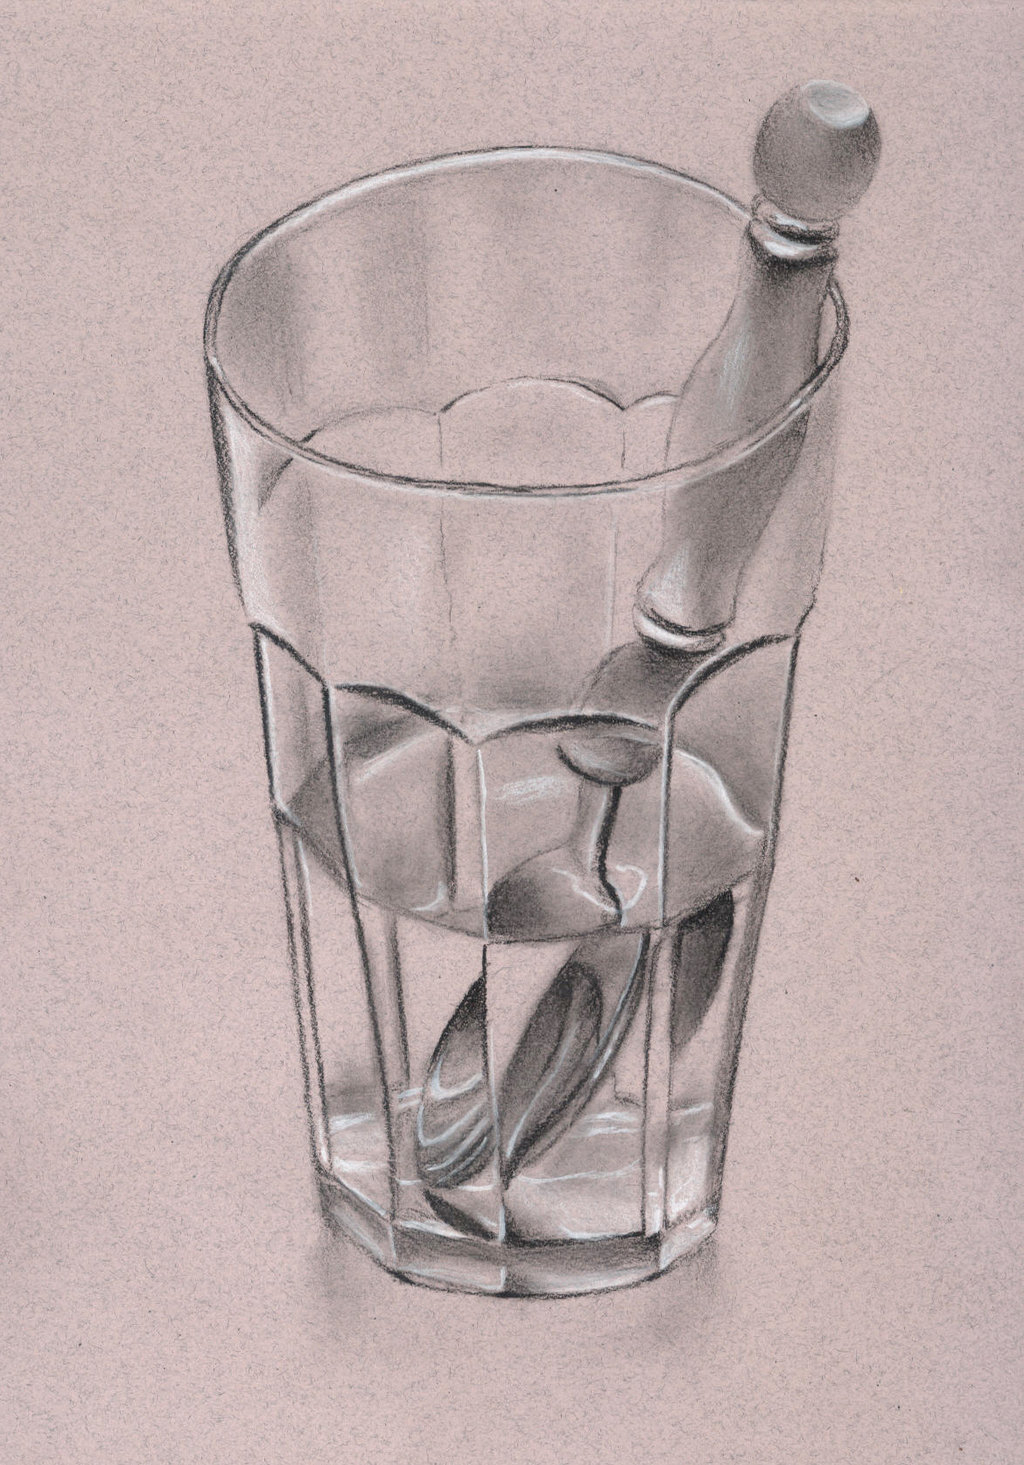 1024x1465 Still Life Glass Drawing Glass Cup And Spoon Still Lifesketchh22